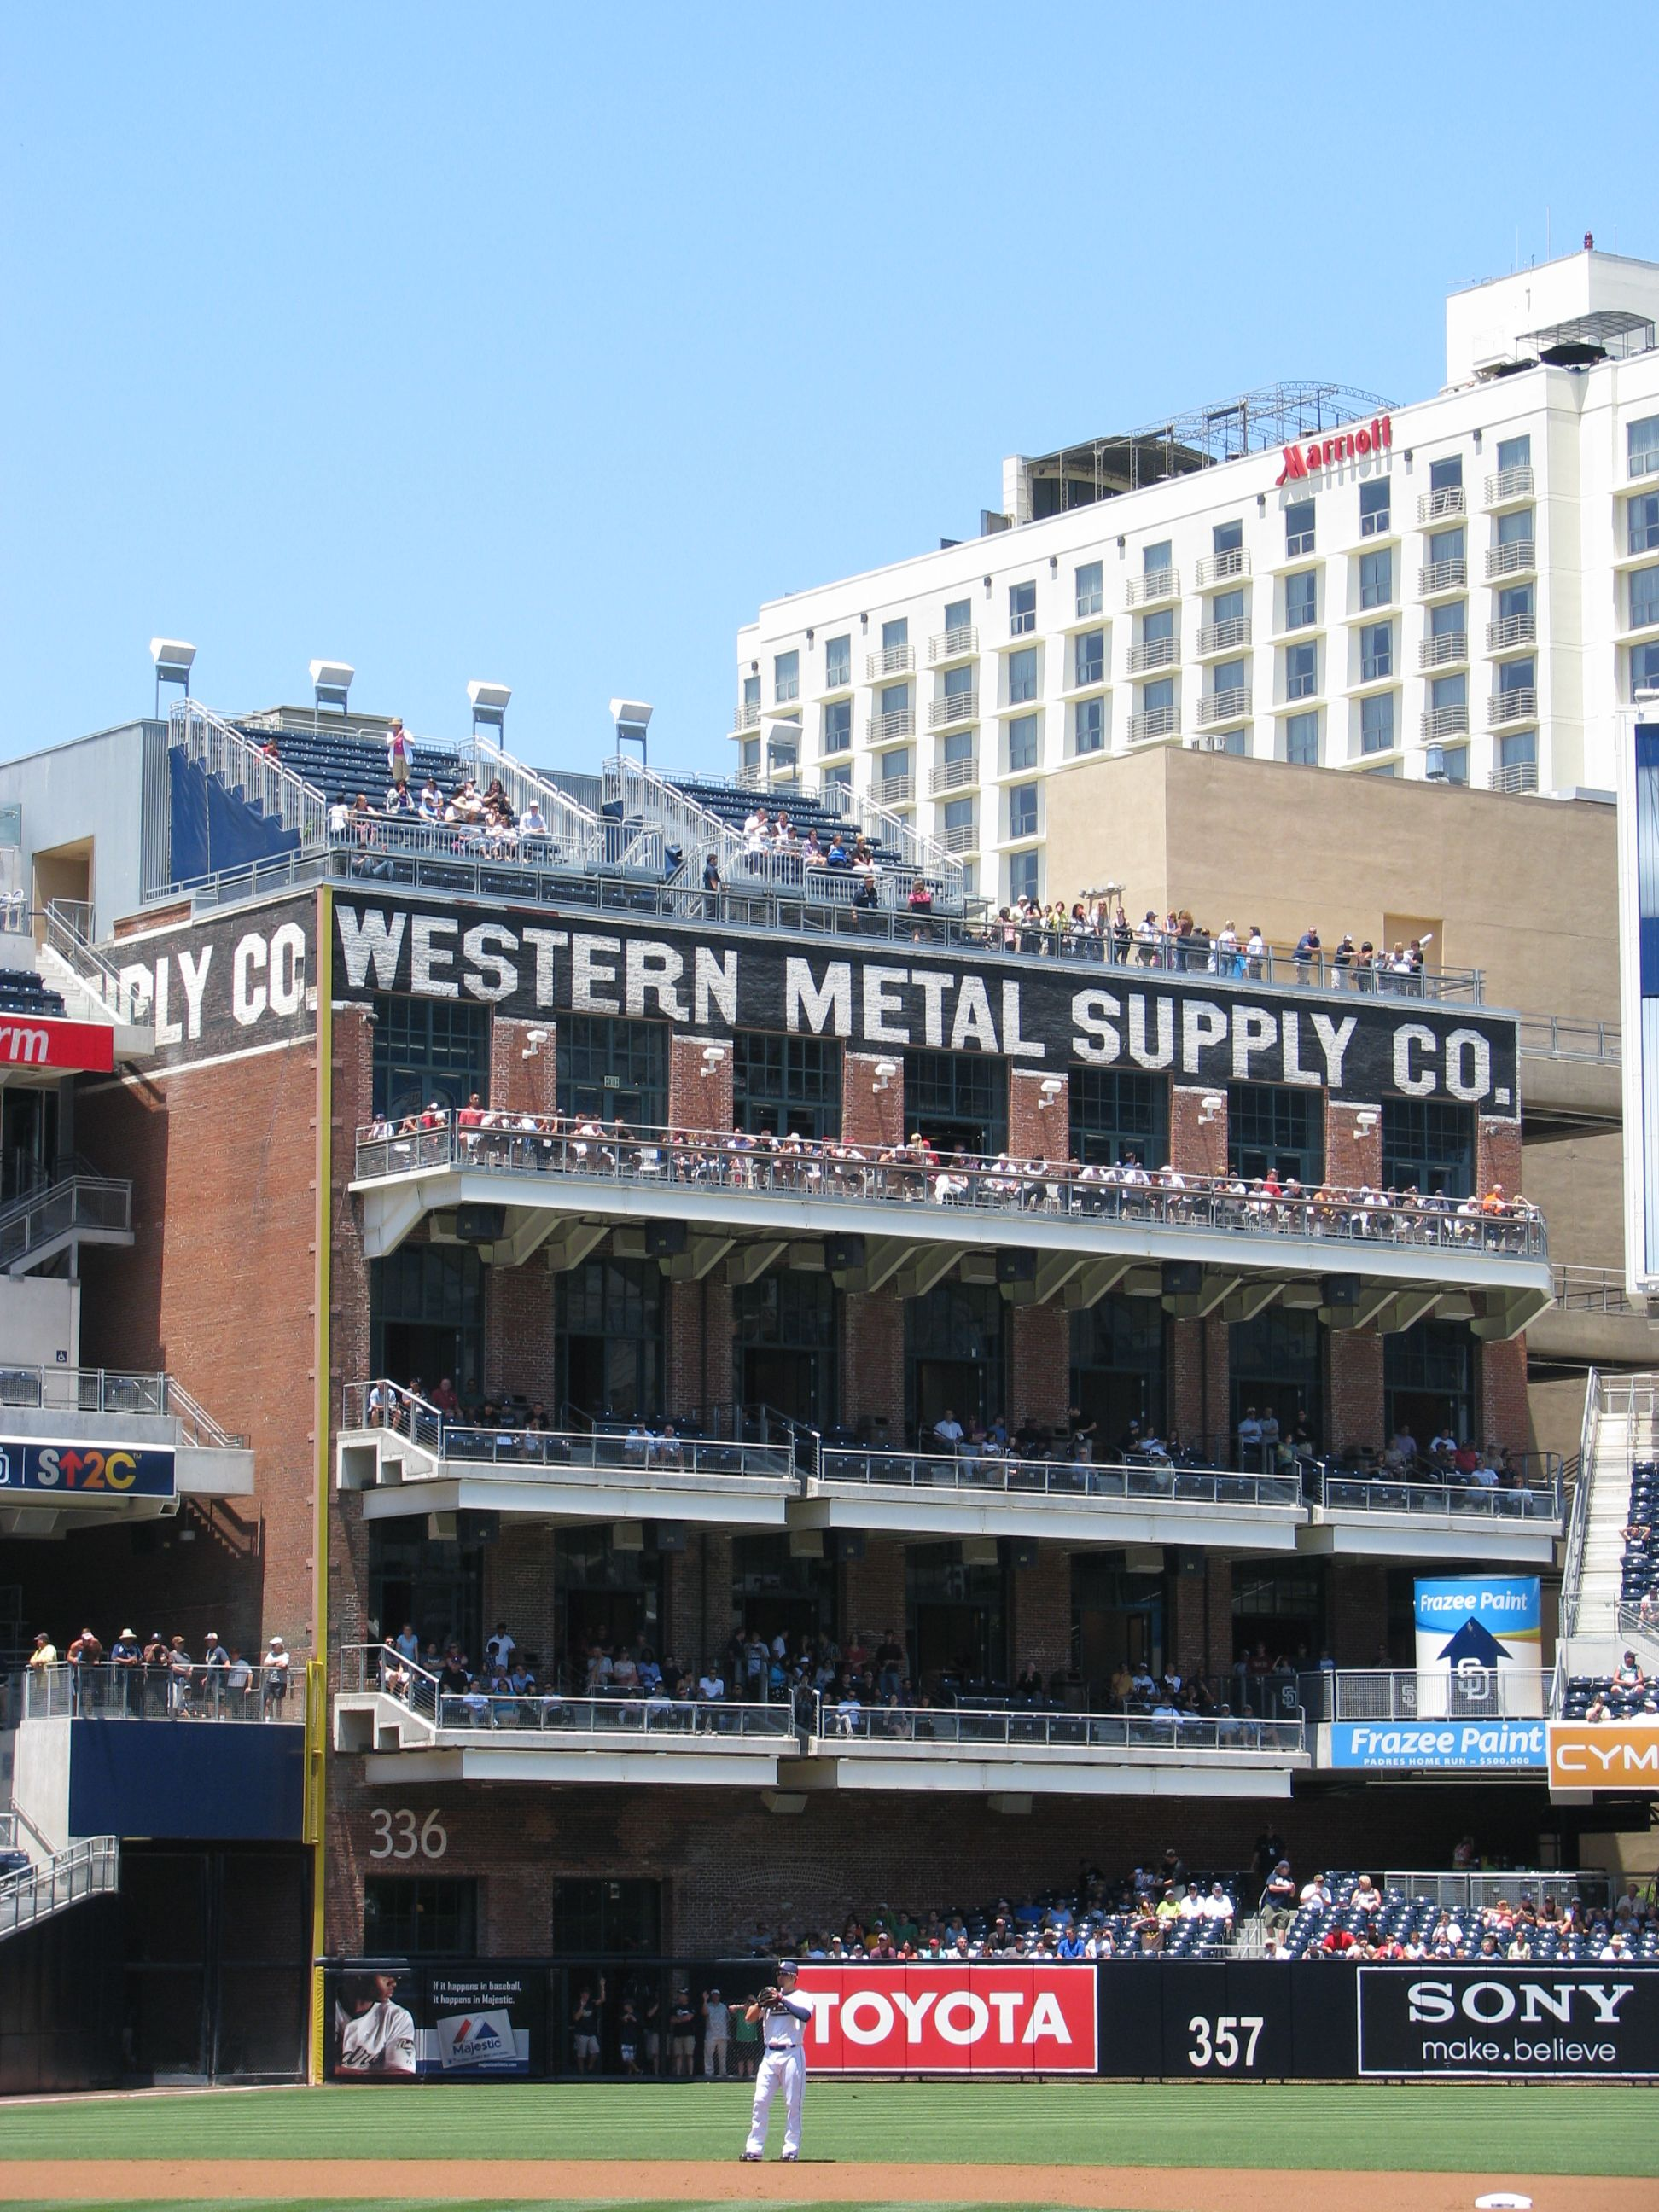 San Diego Padres Petco Park My Mom Worked At Western Metal When I Was A Little Kid My Family Were Big Padr Baseball Park Petco Park Baseball Stadiums Parks